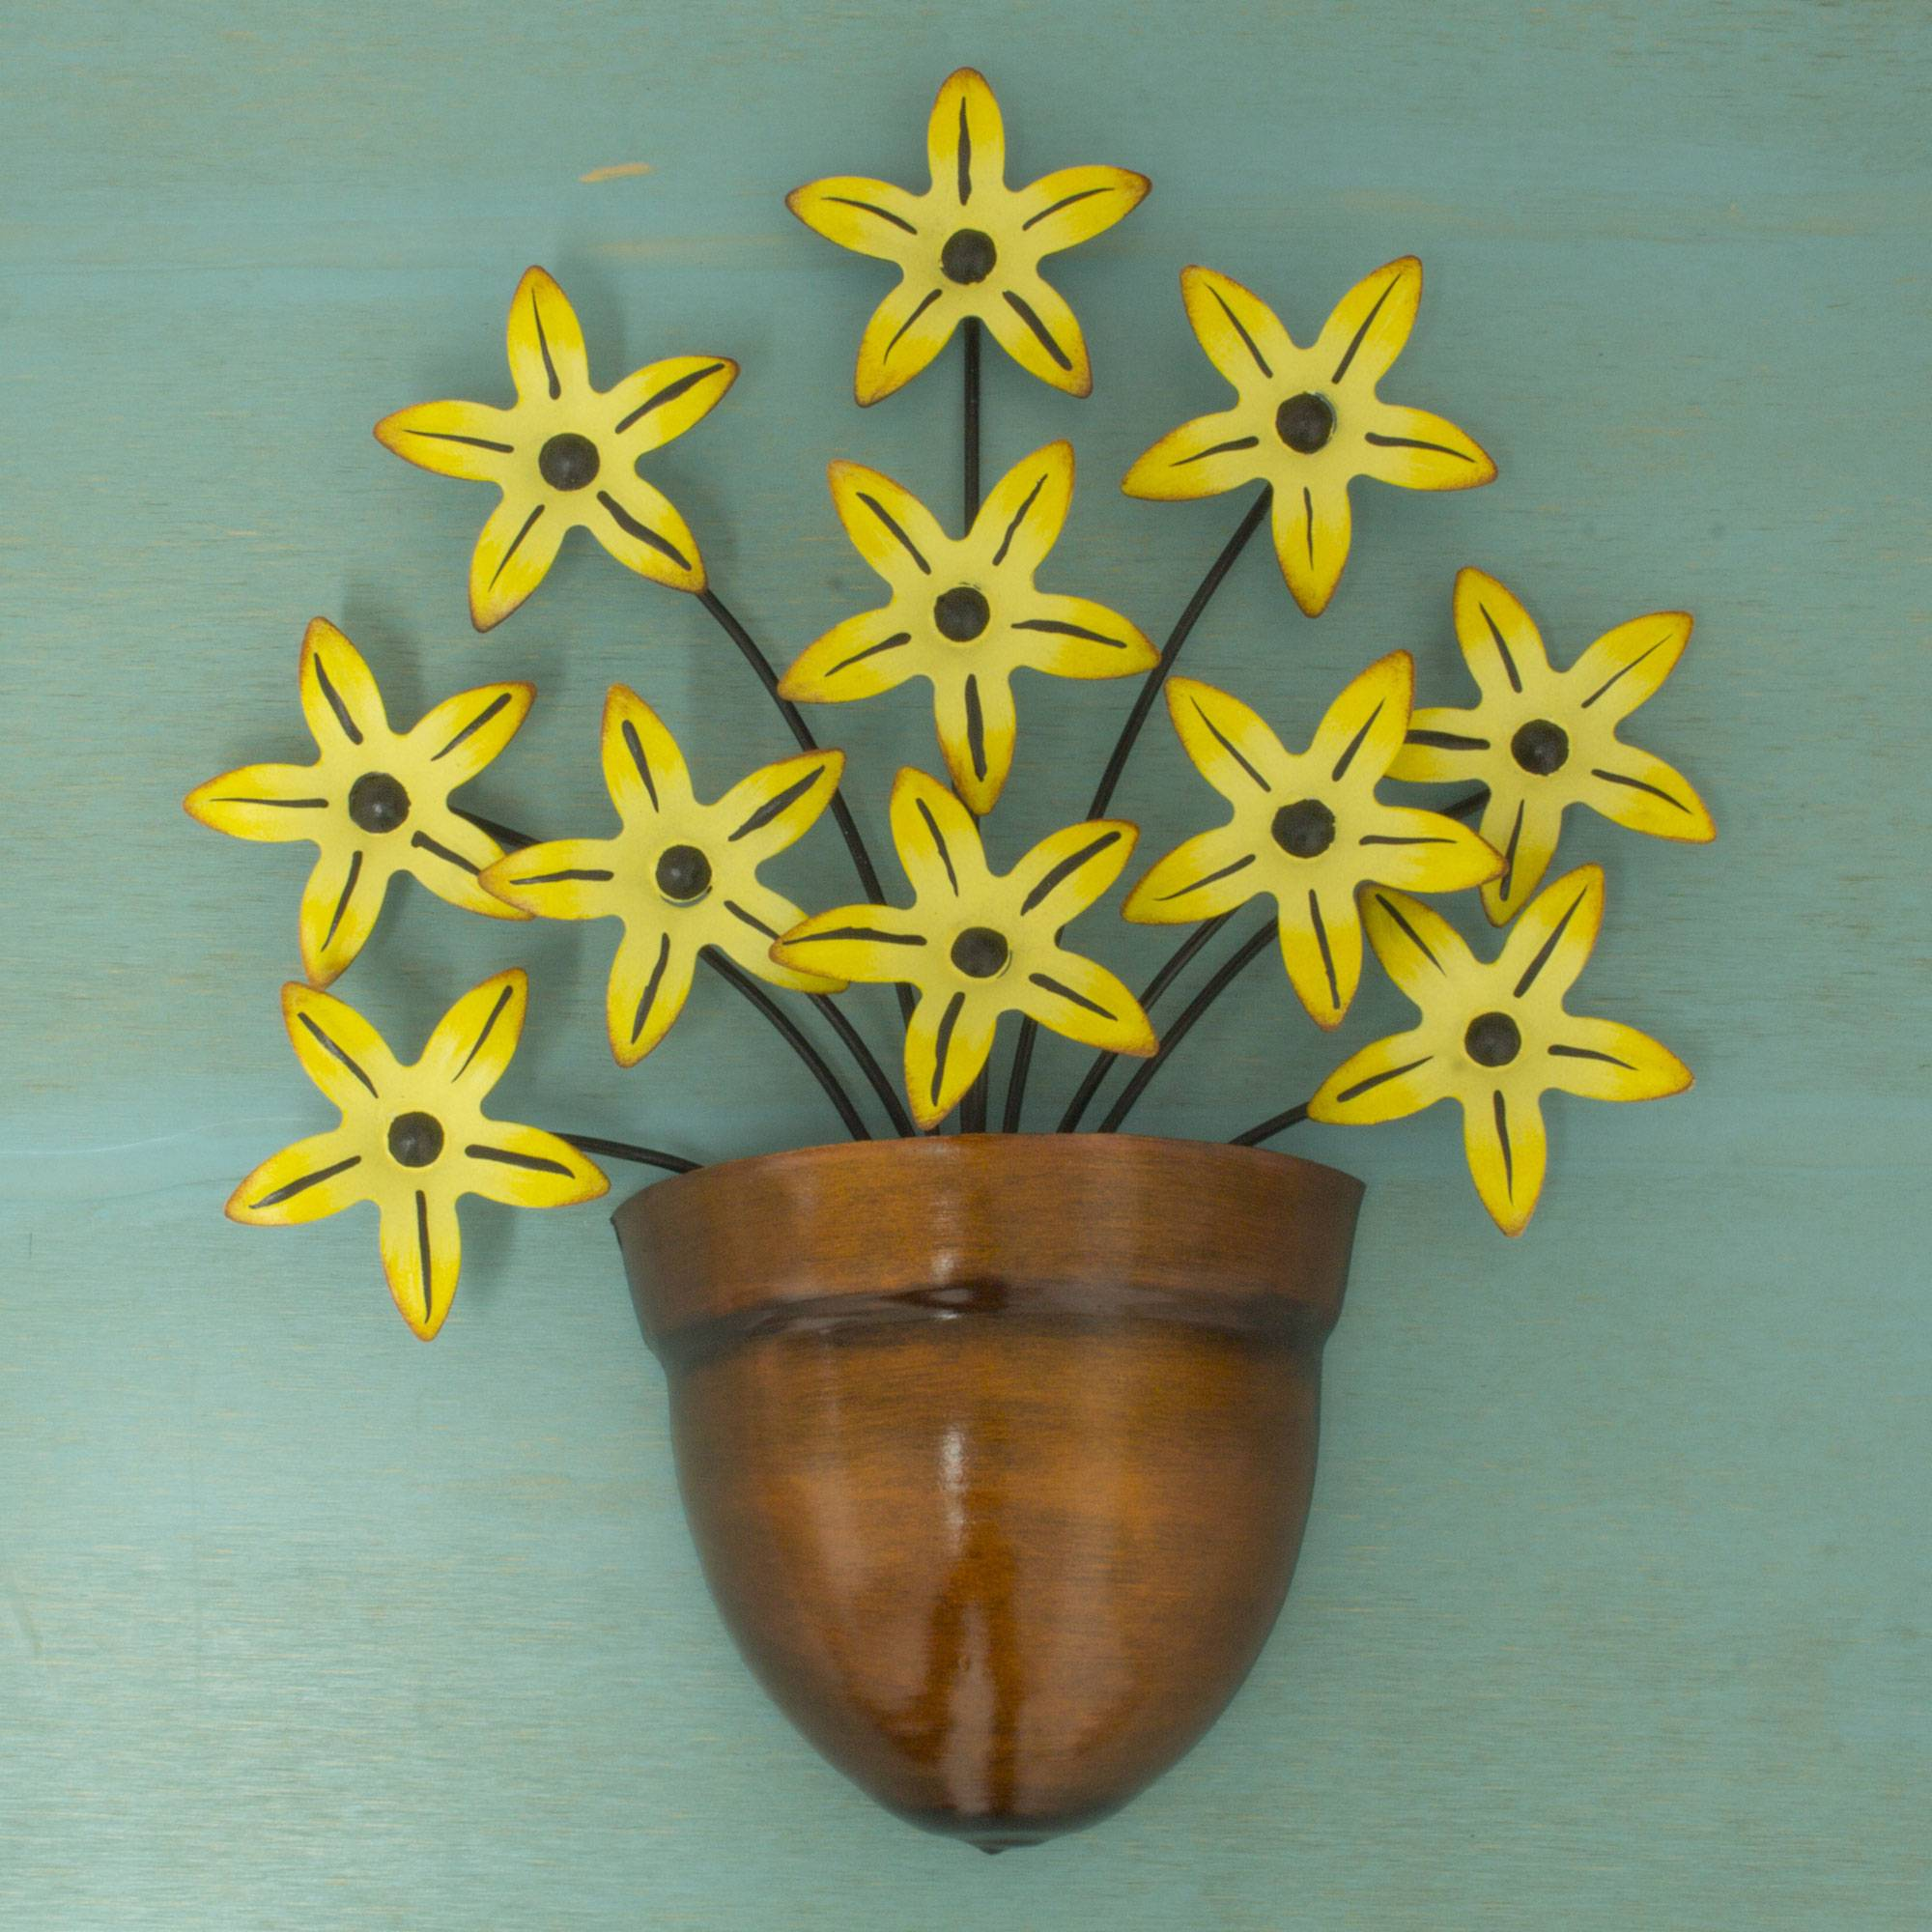 Black-Eyed Susan Yellow Flower Iron Wall Sculpture Crafted by Hand Wall Art In Your Home